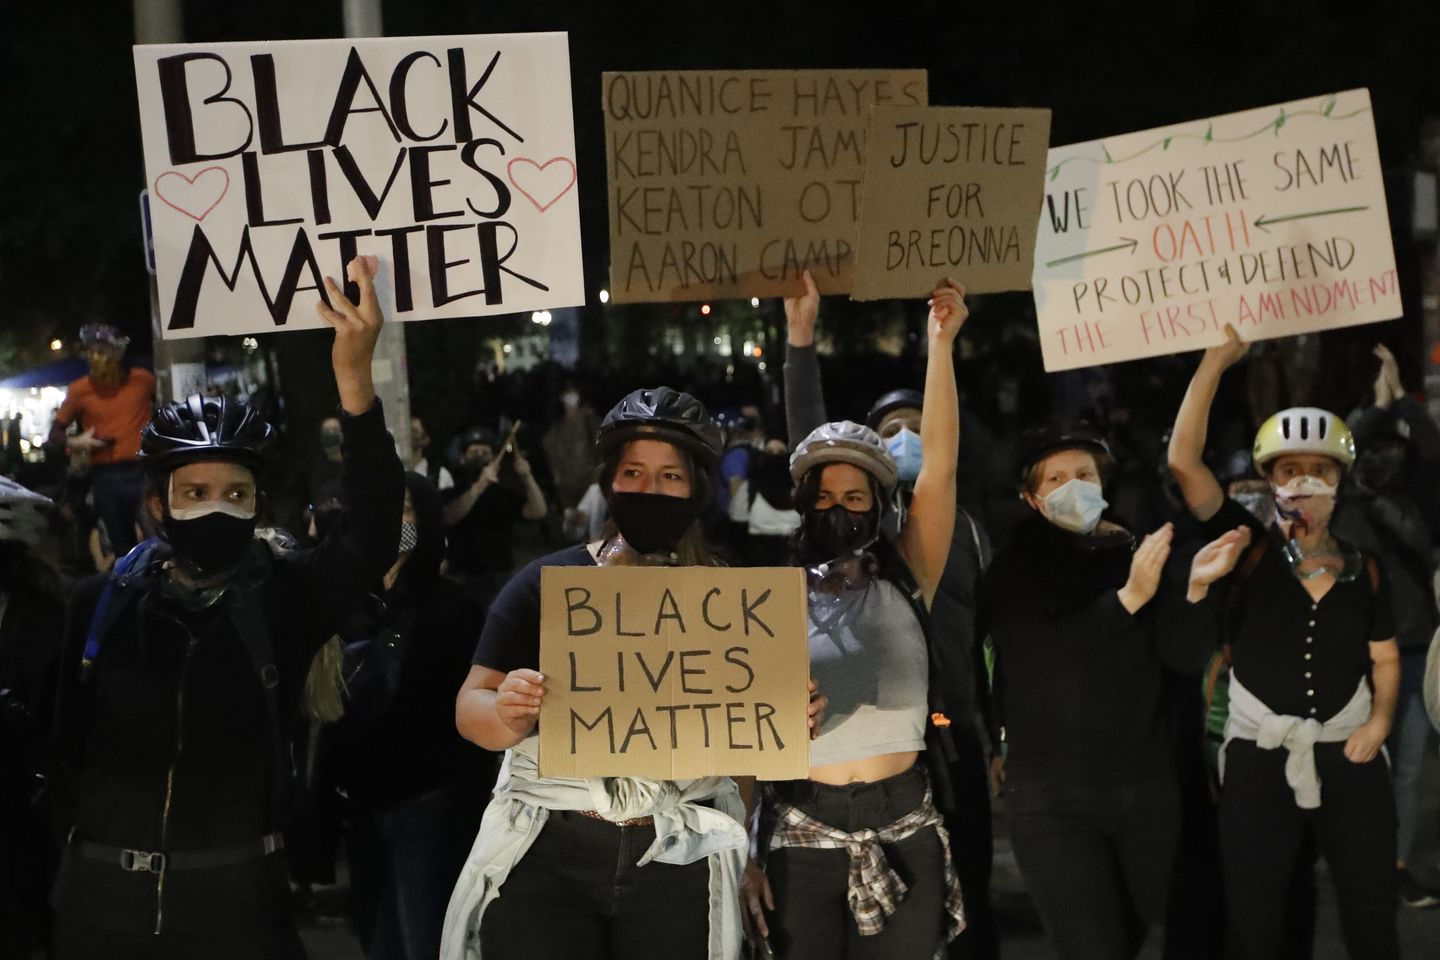 Andrea Kane, Queen Anne's County superintendent, under fire for Black Lives Matter email